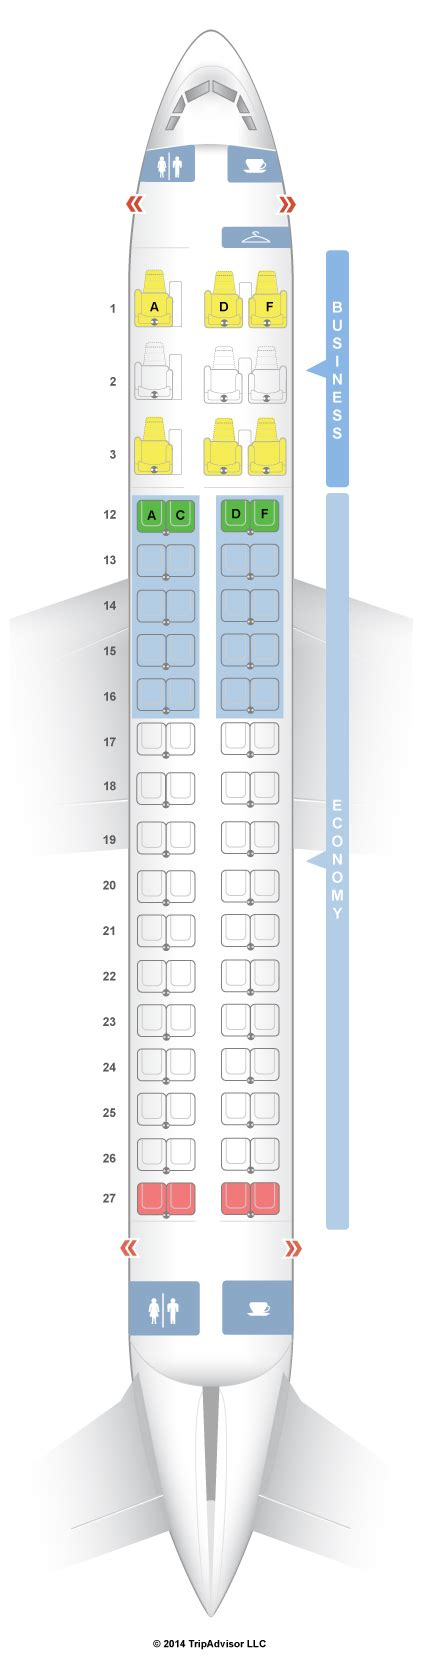 embraer erj 175 seat map seatguru seat map air canada embraer e 175